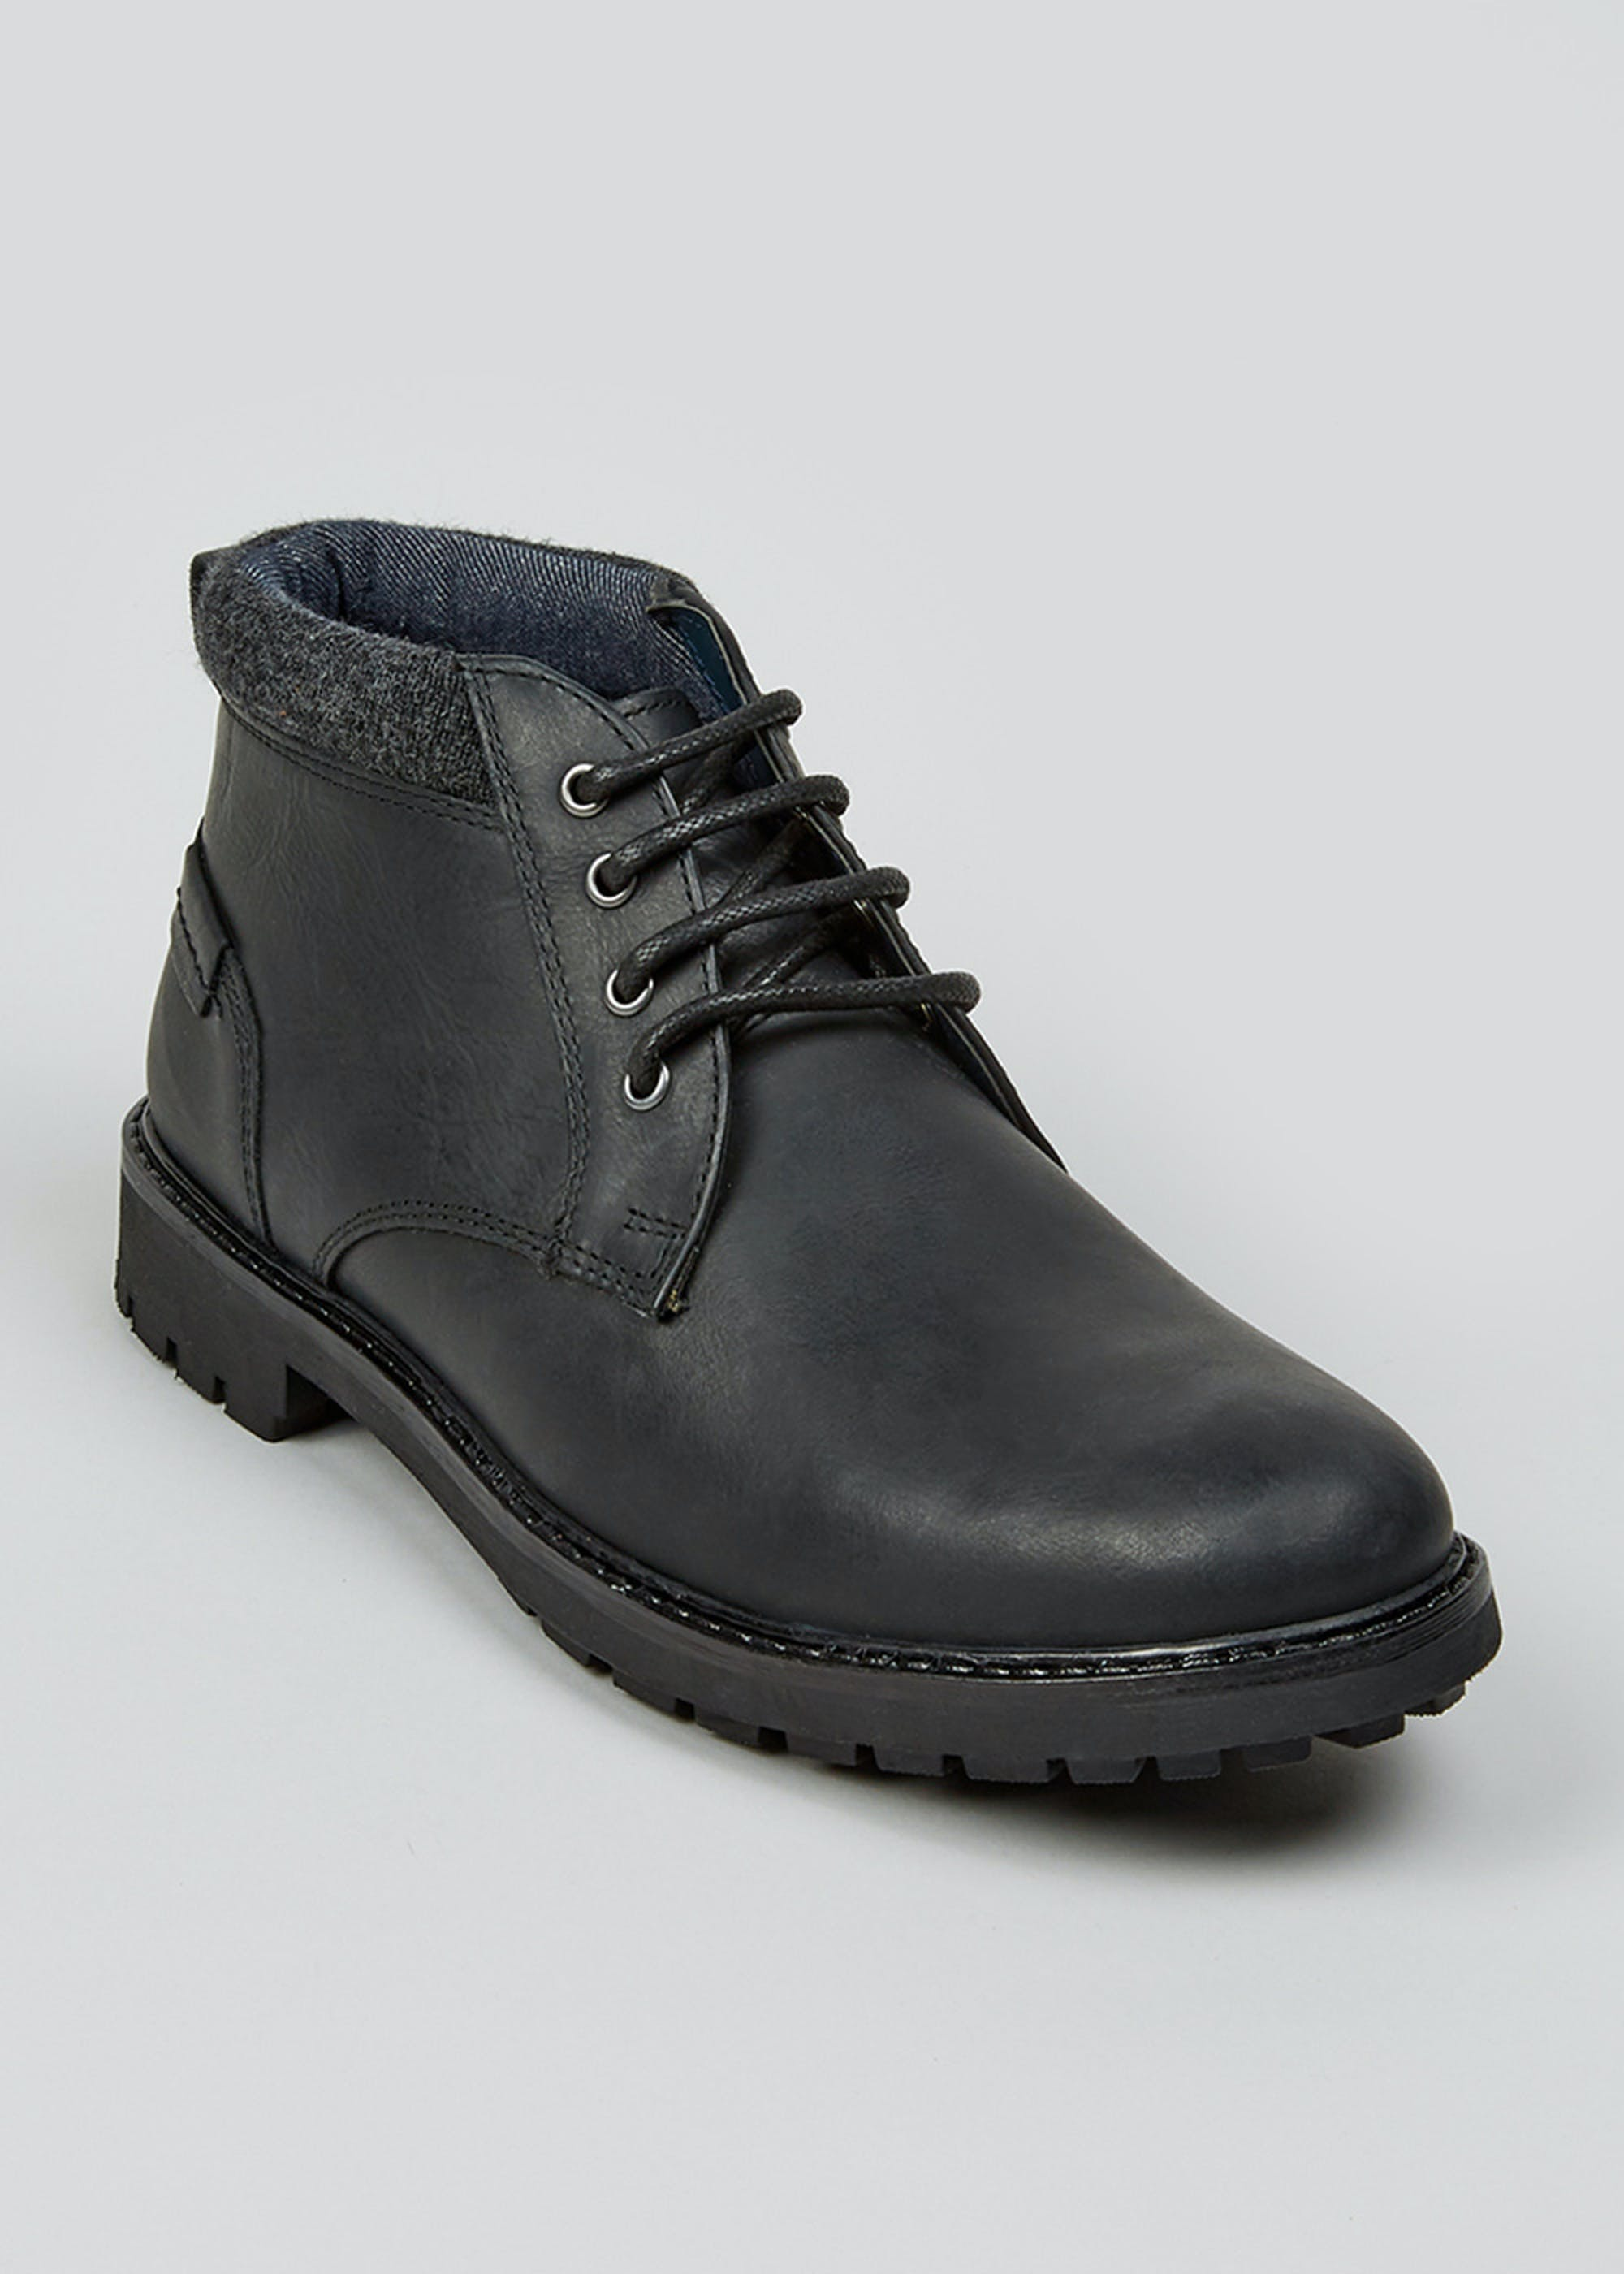 Black Real Leather Chukka Boots Black STm23x